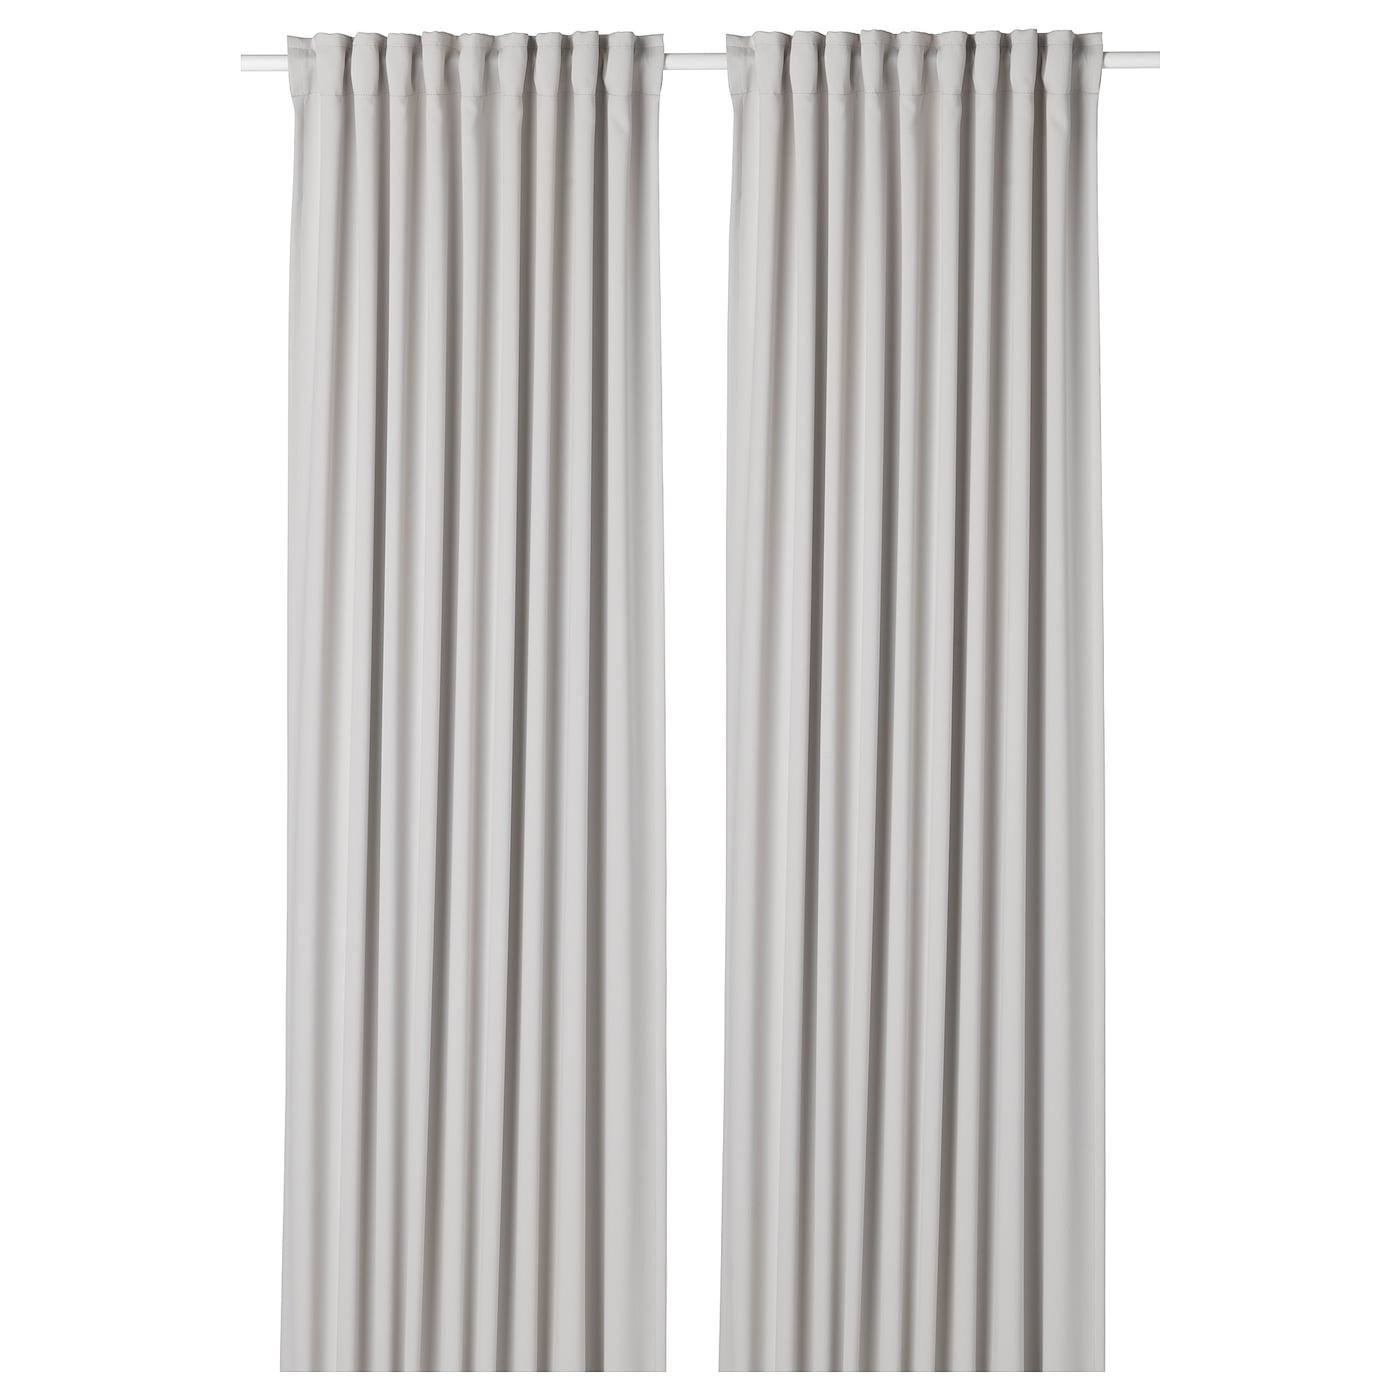 IKEA MAJGULL room darkening curtains, 1 pair